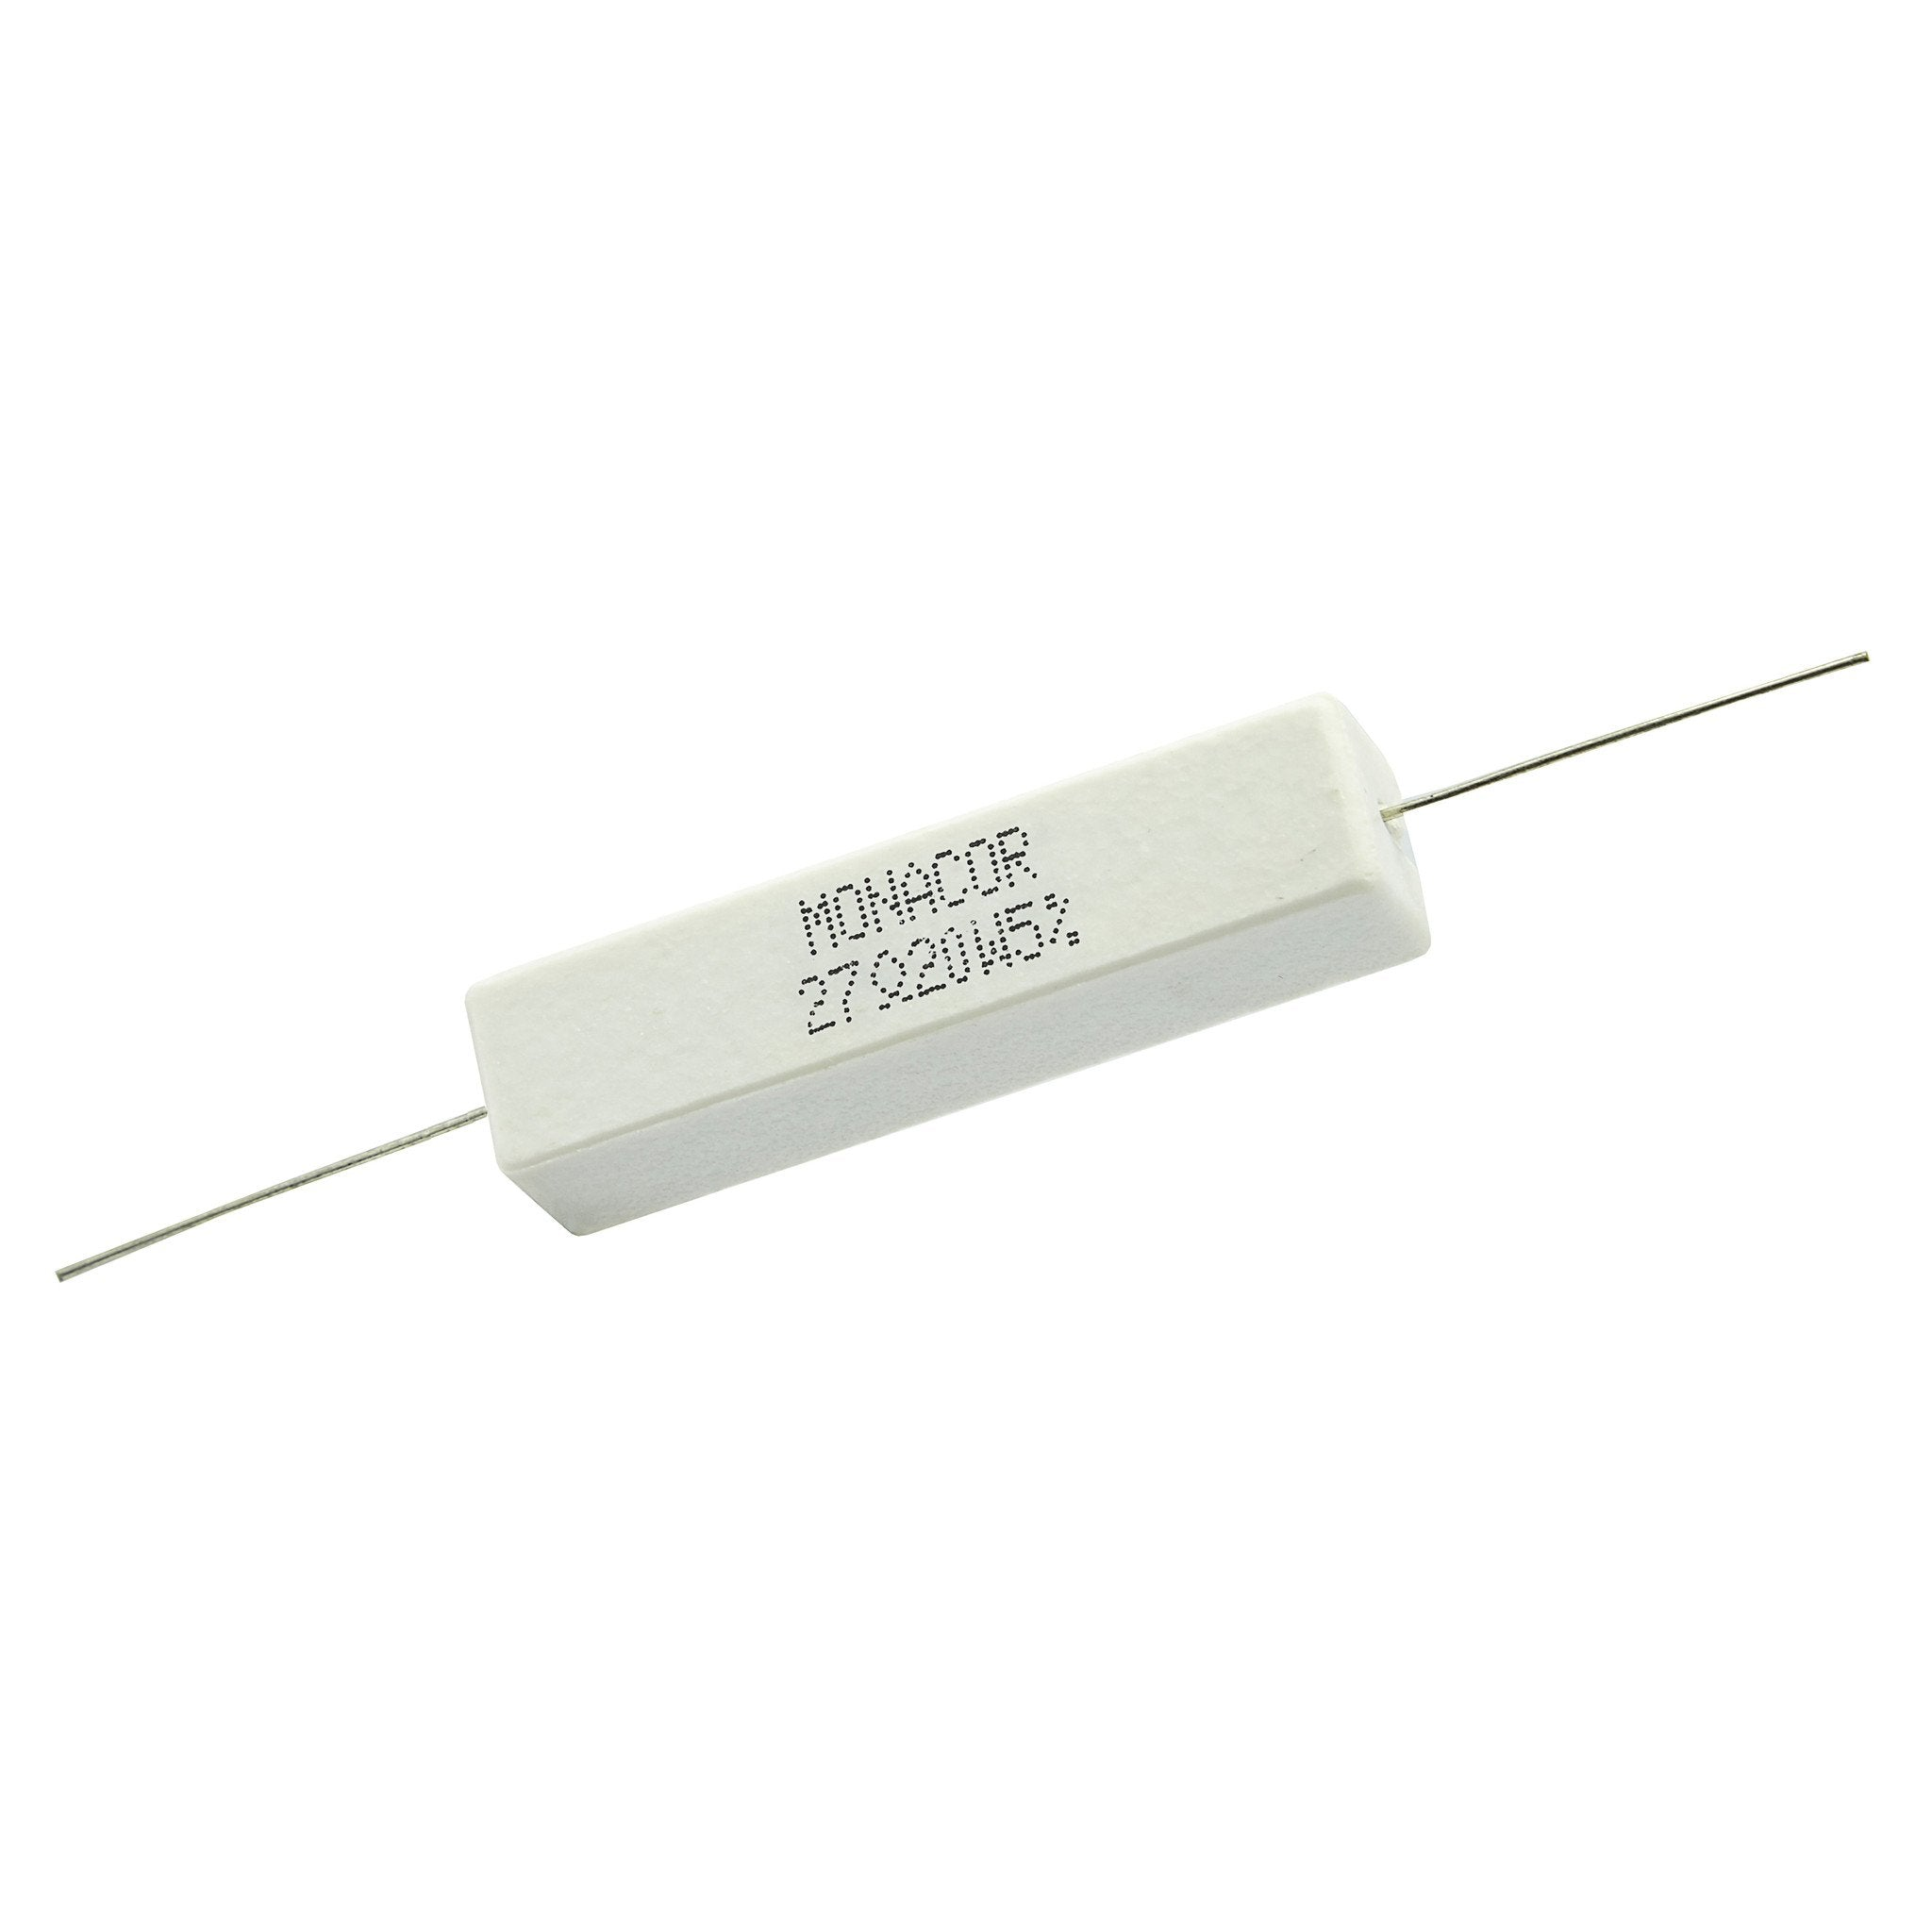 27 Ohm 20 Watt 5% Ceramic Wirewound Resistor - Willys-Hifi Ltd